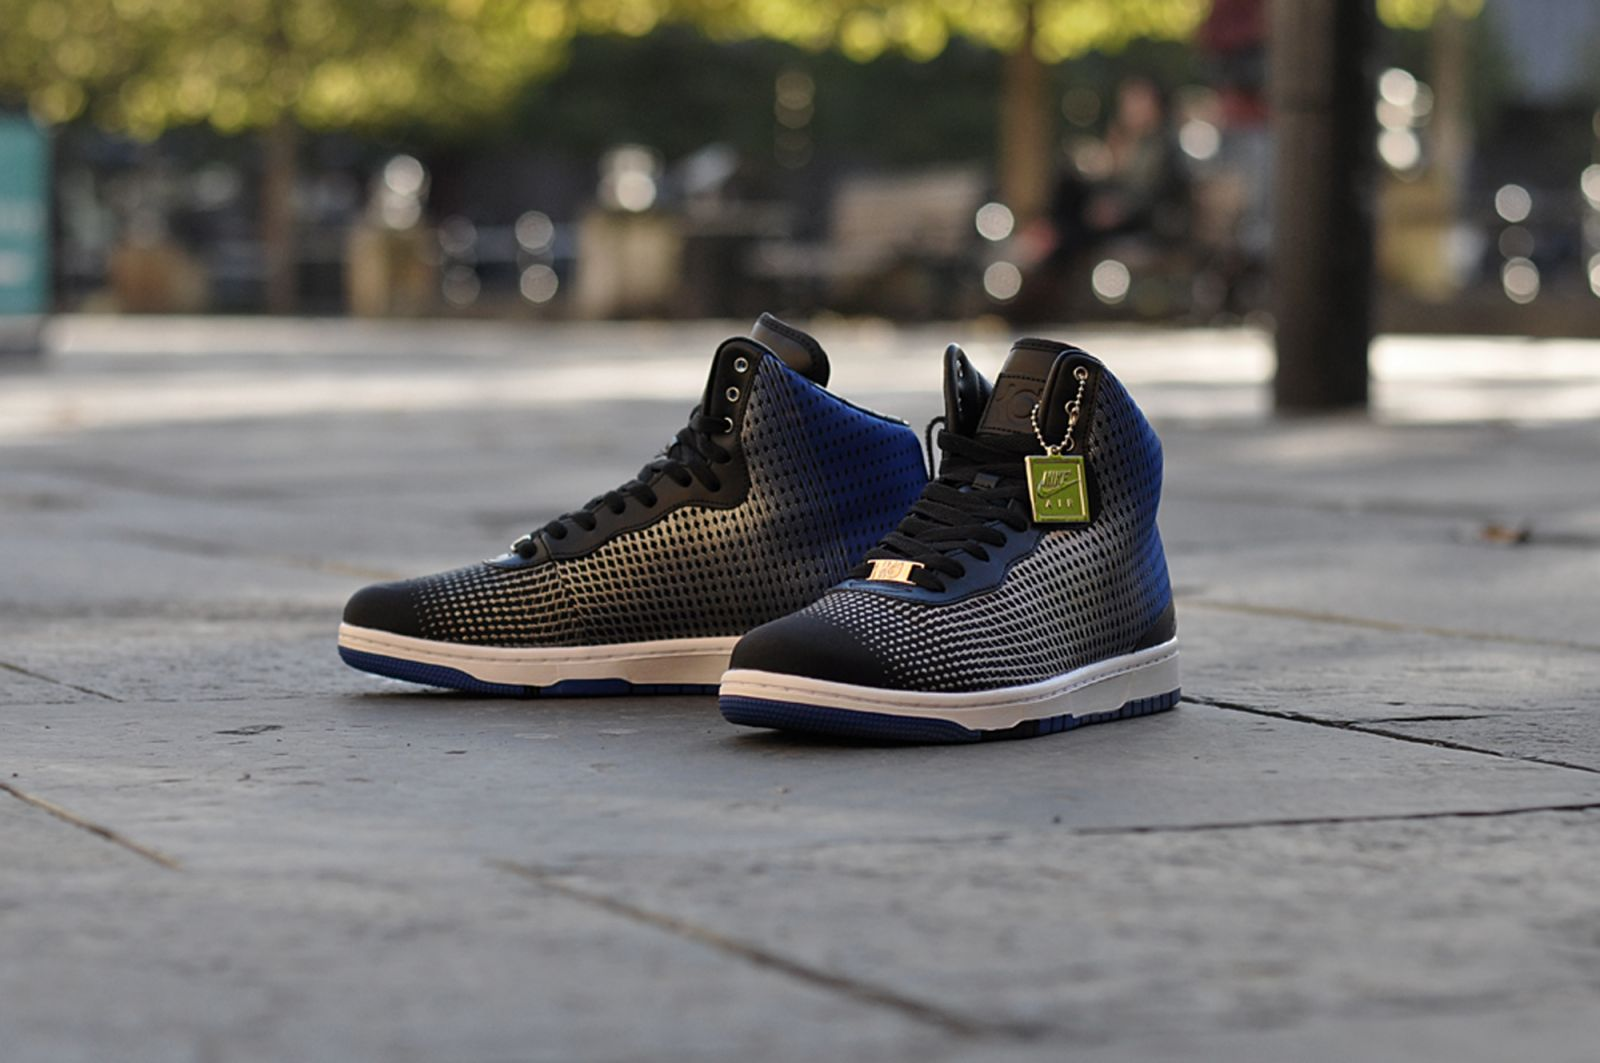 80772dc6143e UPDATE 10 16  New images courtesy of Soleheaven. Tags. ○ Nike KD